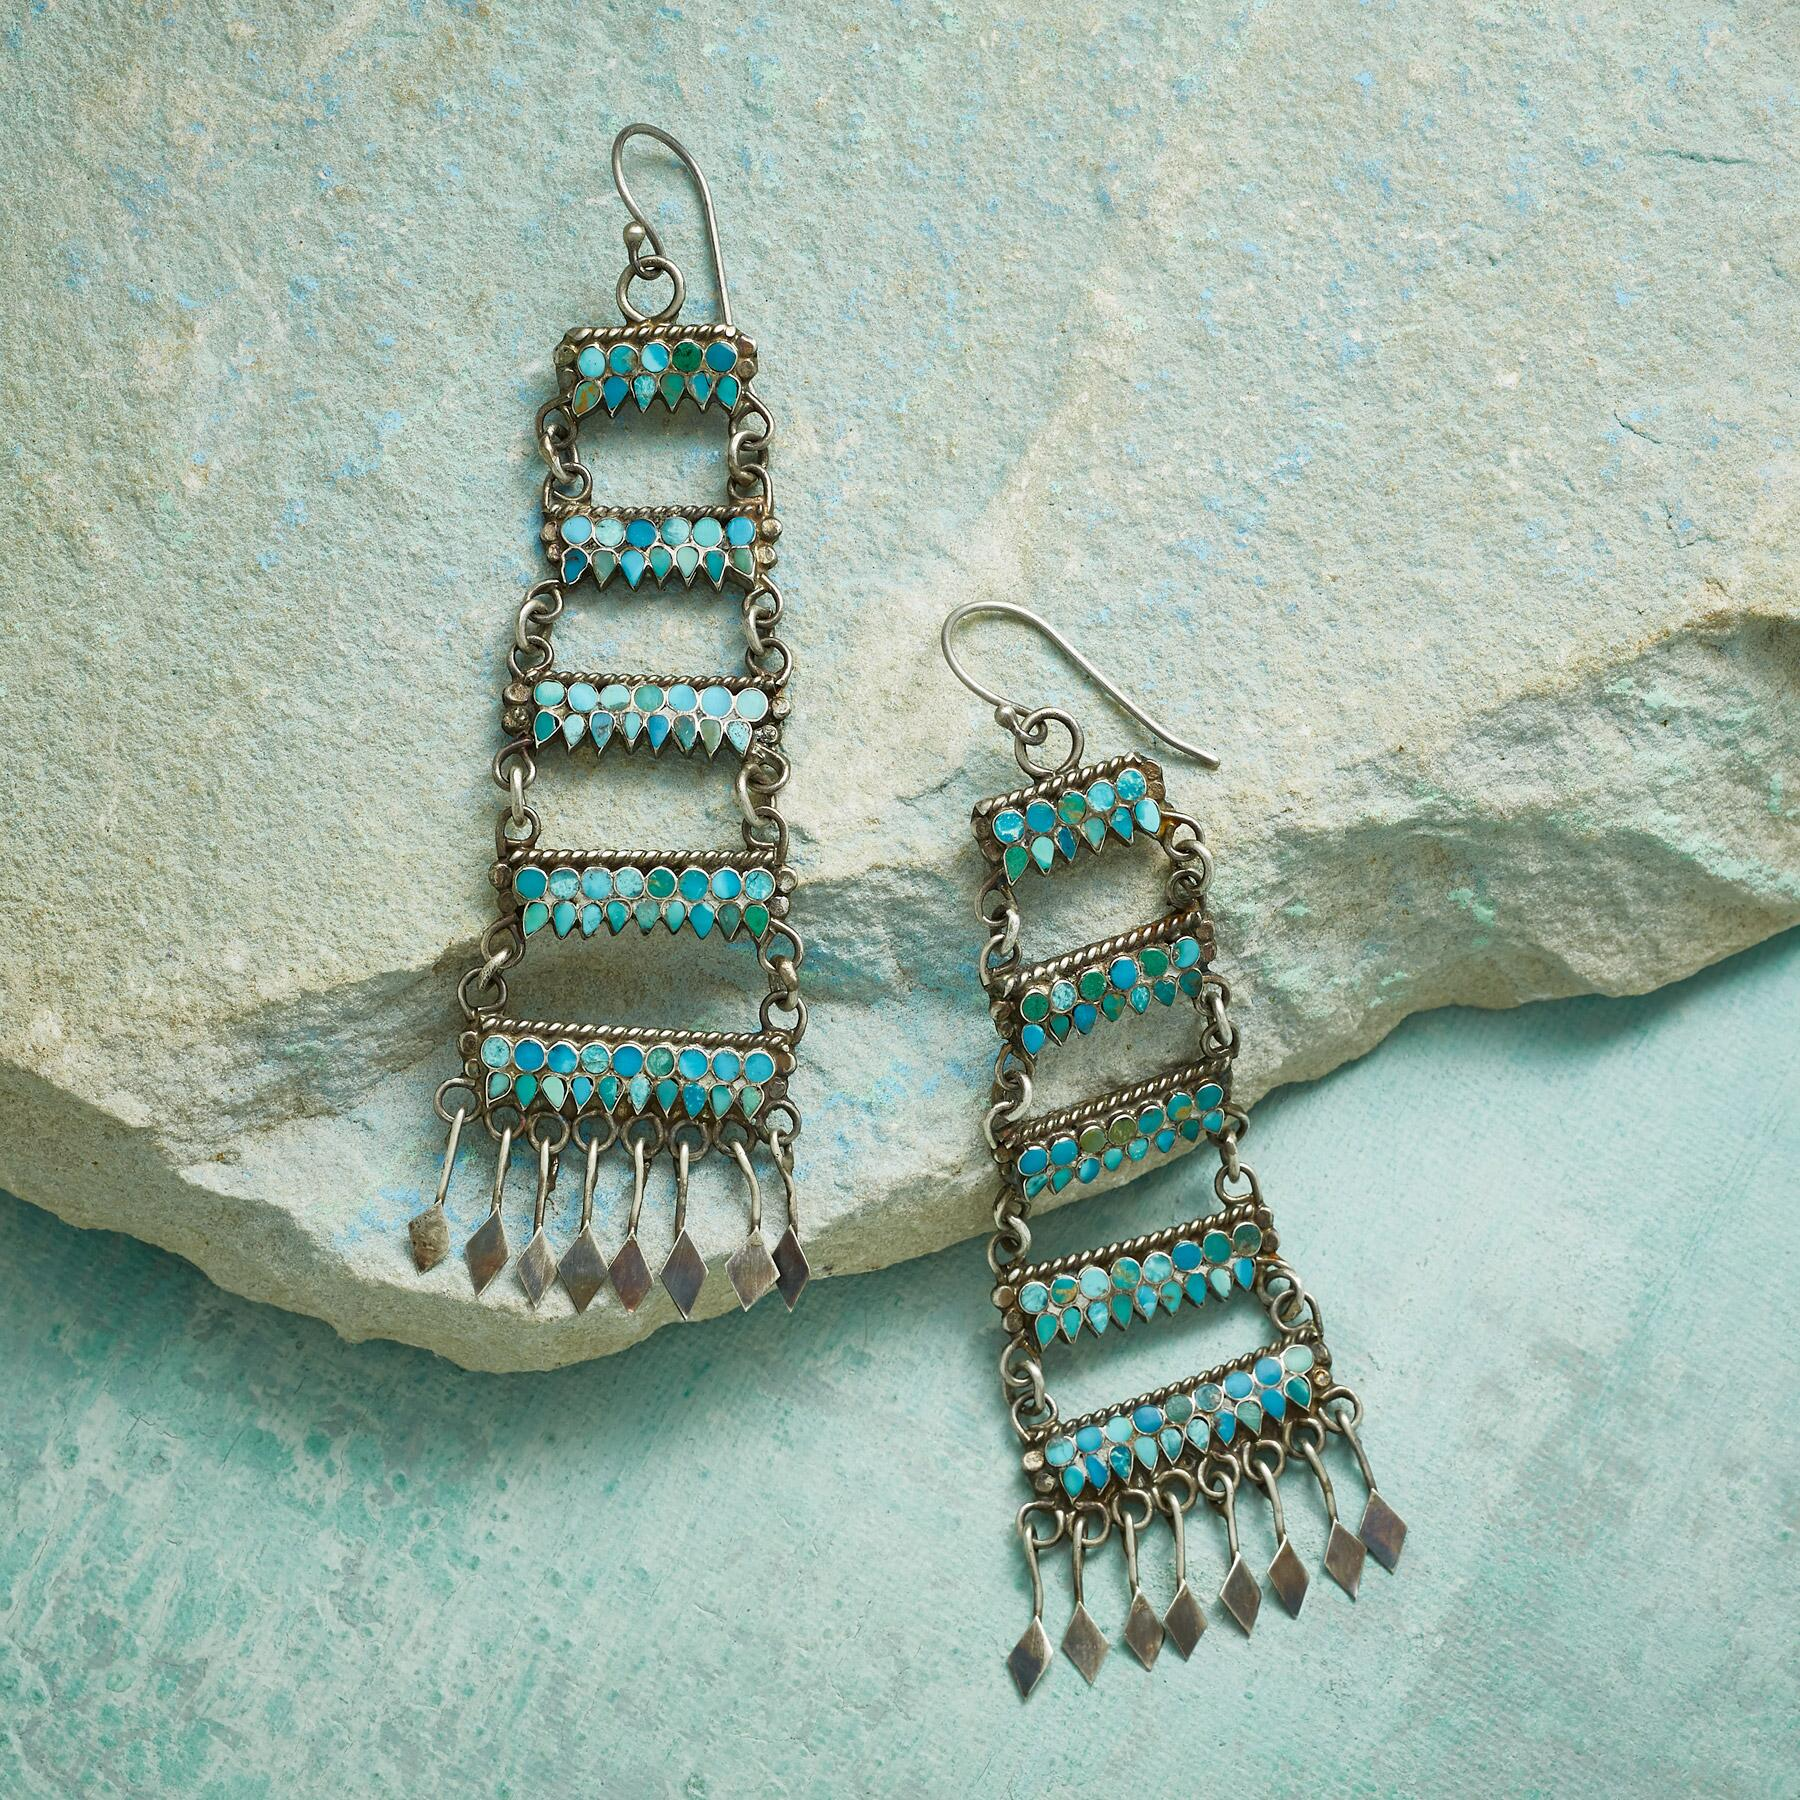 1970S ZUNI TURQUOISE EARRINGS: View 1